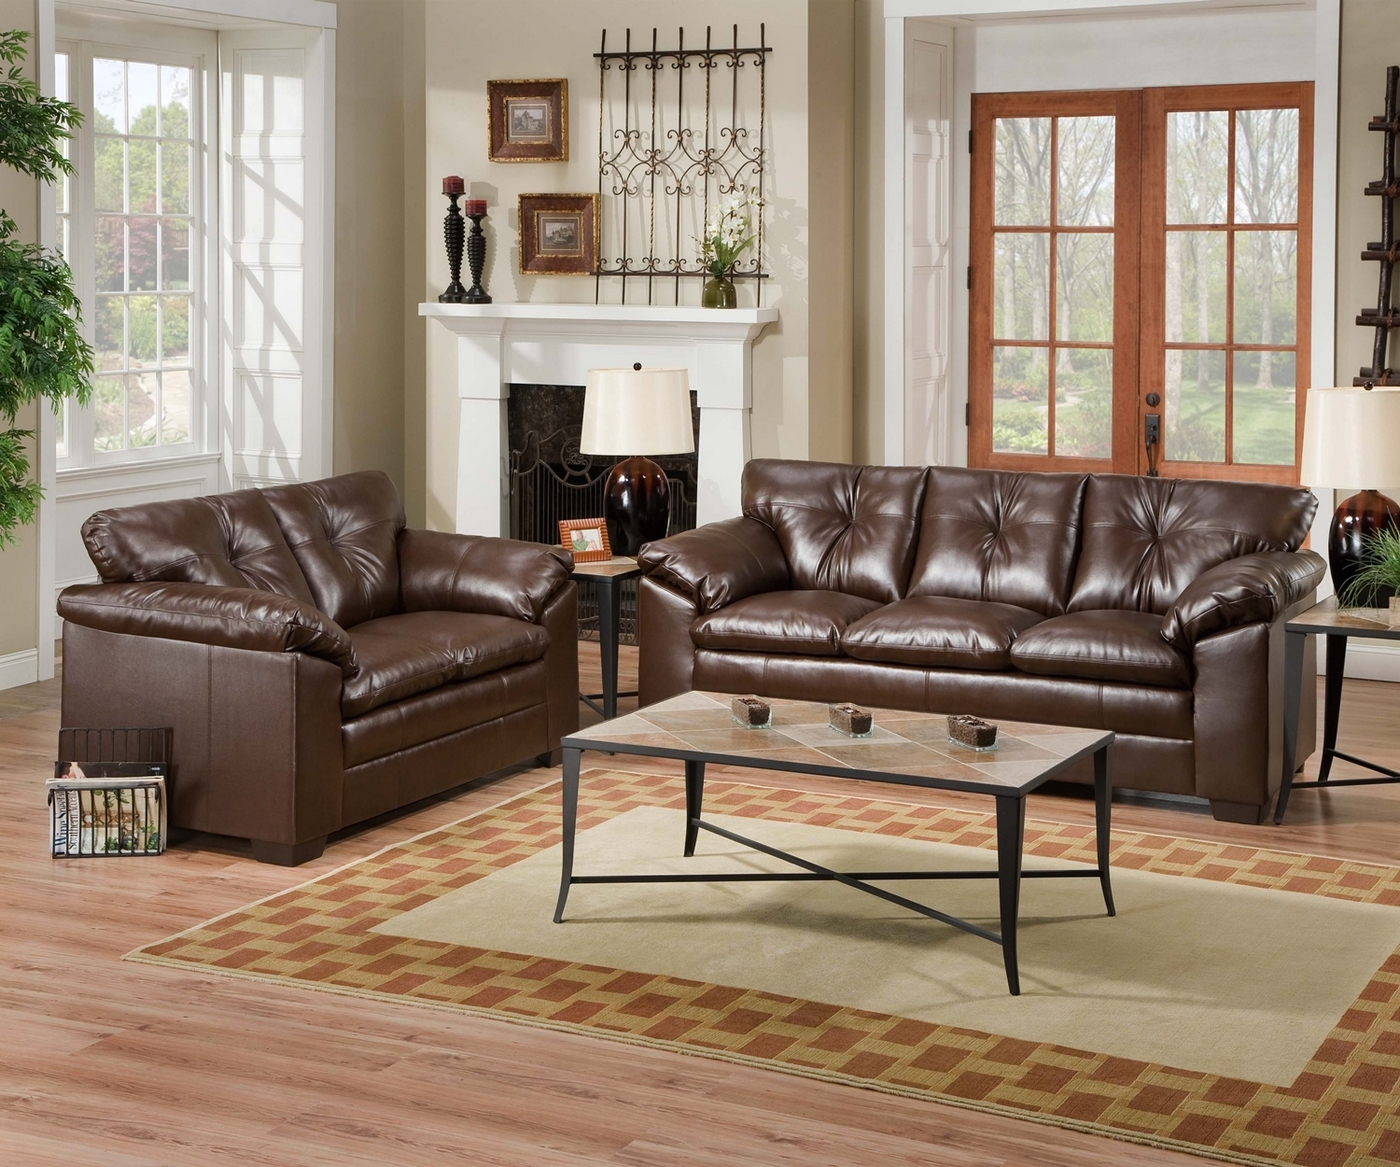 espresso bonded leather reclining sofa loveseat set window fireplace 6559 sebring coffee and love seat simmons